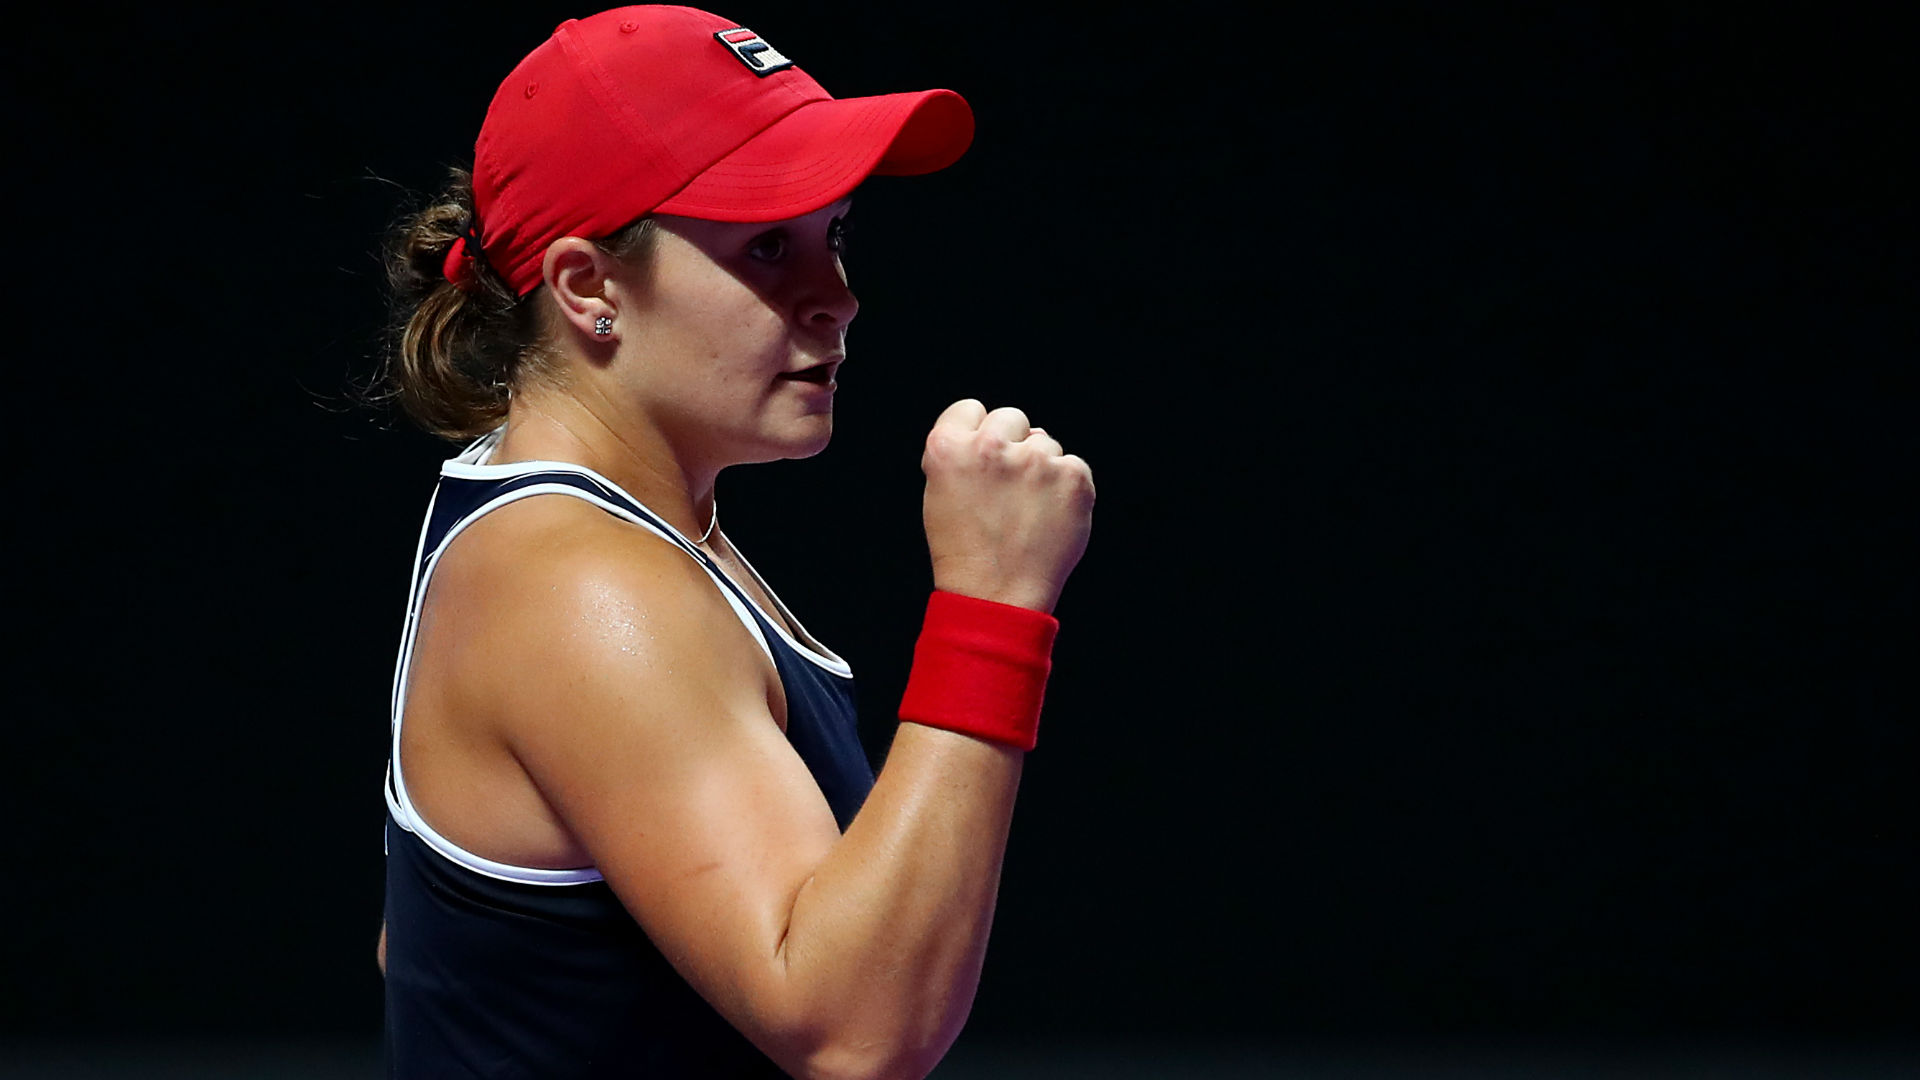 World number one Barty to face reigning champion Svitolina in WTA Finals decider